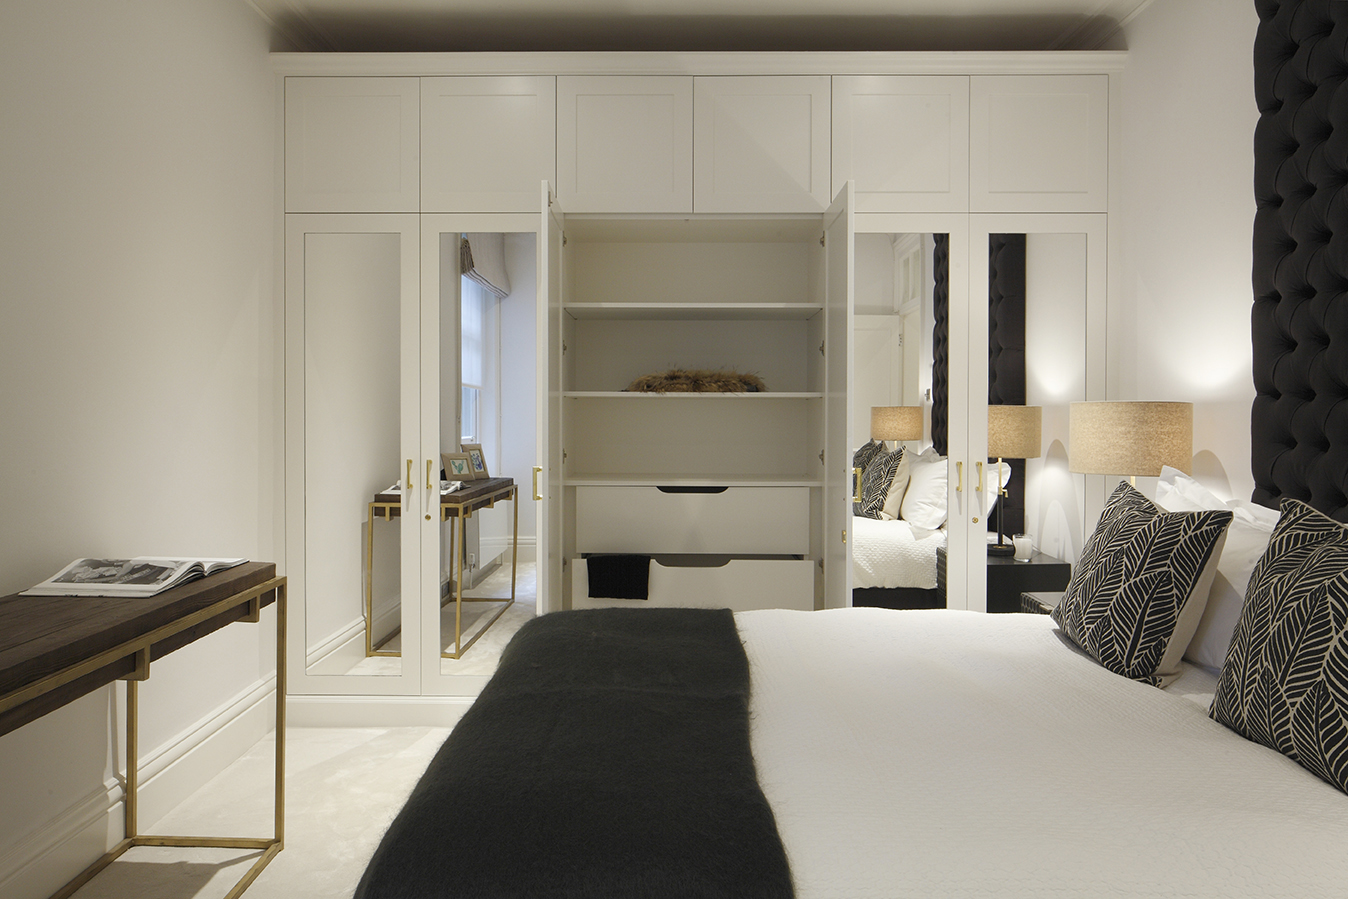 NW1 - Master bedroom - Dispaying the joinery interior.jpg